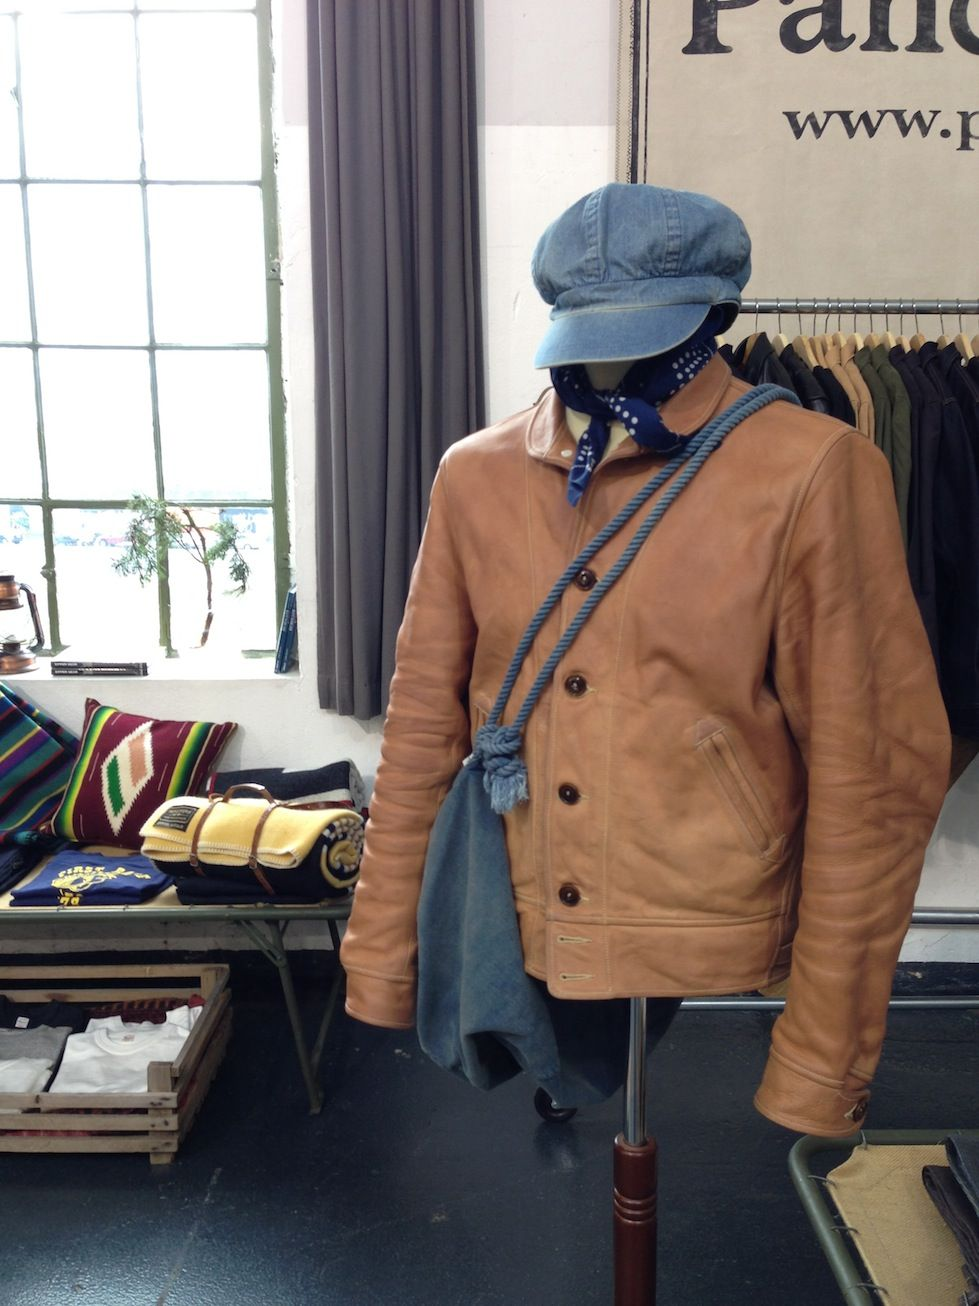 Pancho And Lefty Pop Up Store Capsule Berlin Mister Freedom Indigofera Jeans Warehouse Mens Outfits Heritage Fashion Blue Outfit